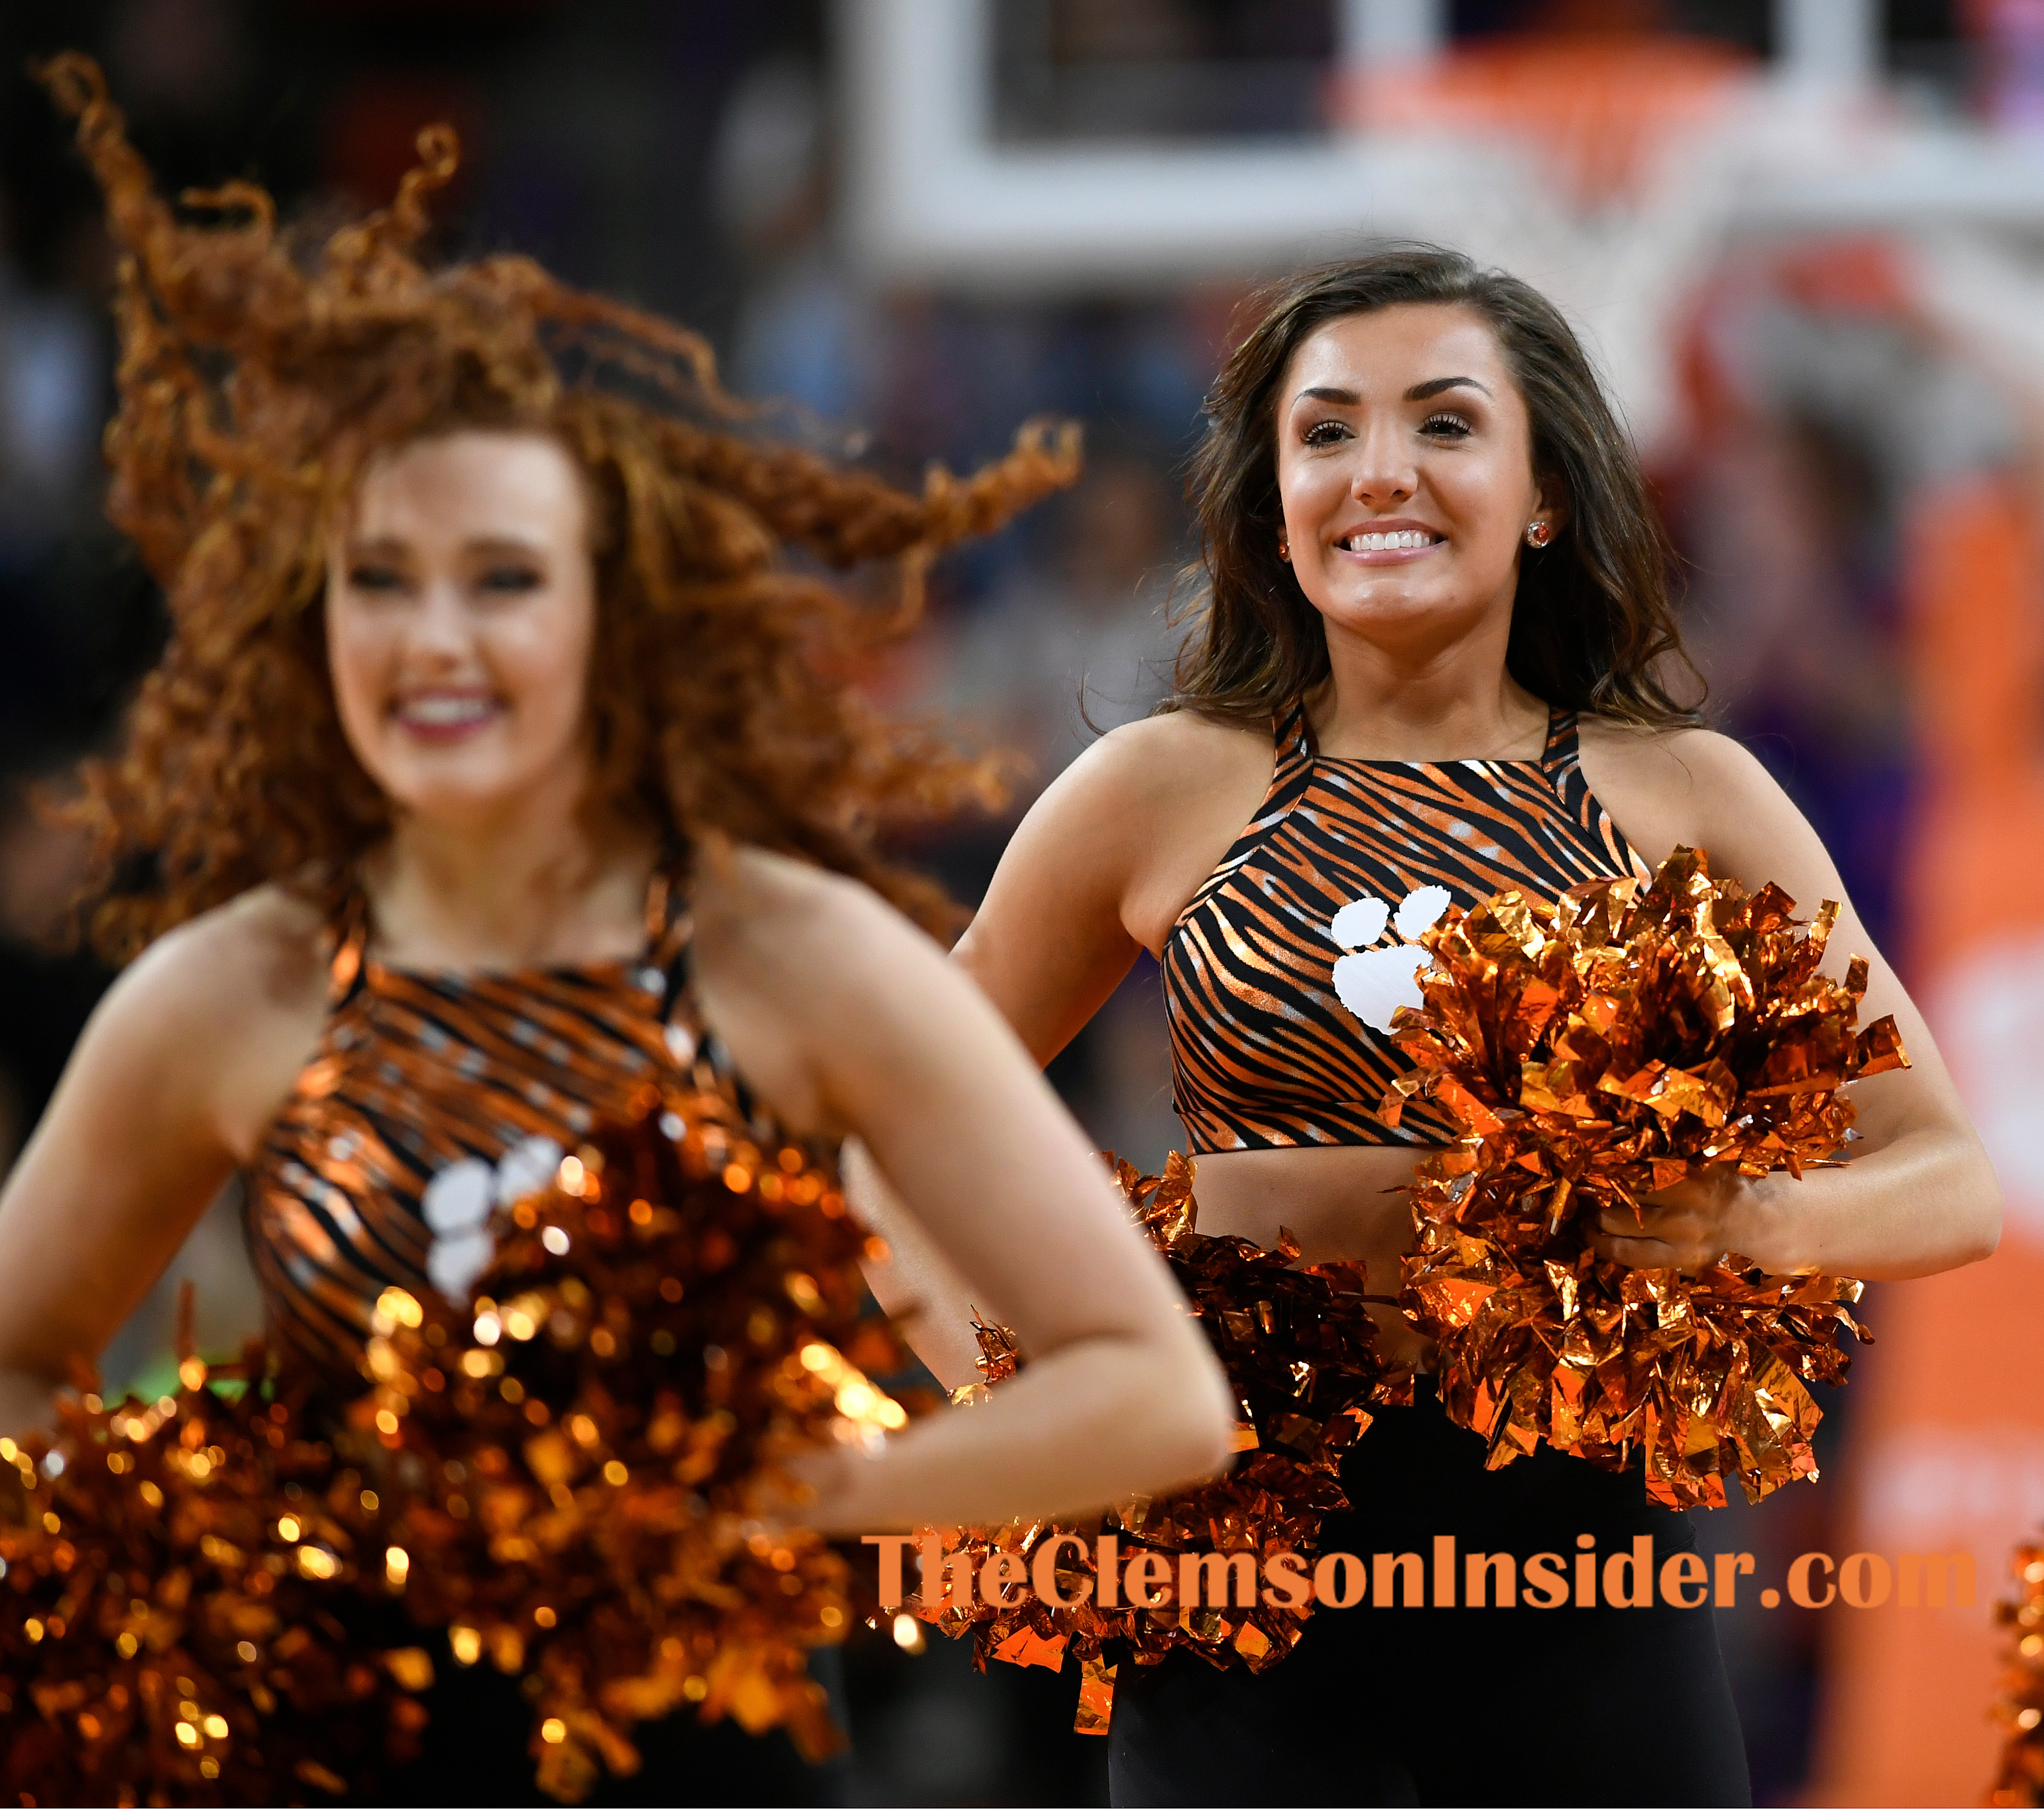 Clemson's Rally Cats dance during the Tigers game against Syracuse Tuesday, January 28, 2020 at Clemson's Littlejohn Coliseum. Bart Boatwright/The Clemson Insider